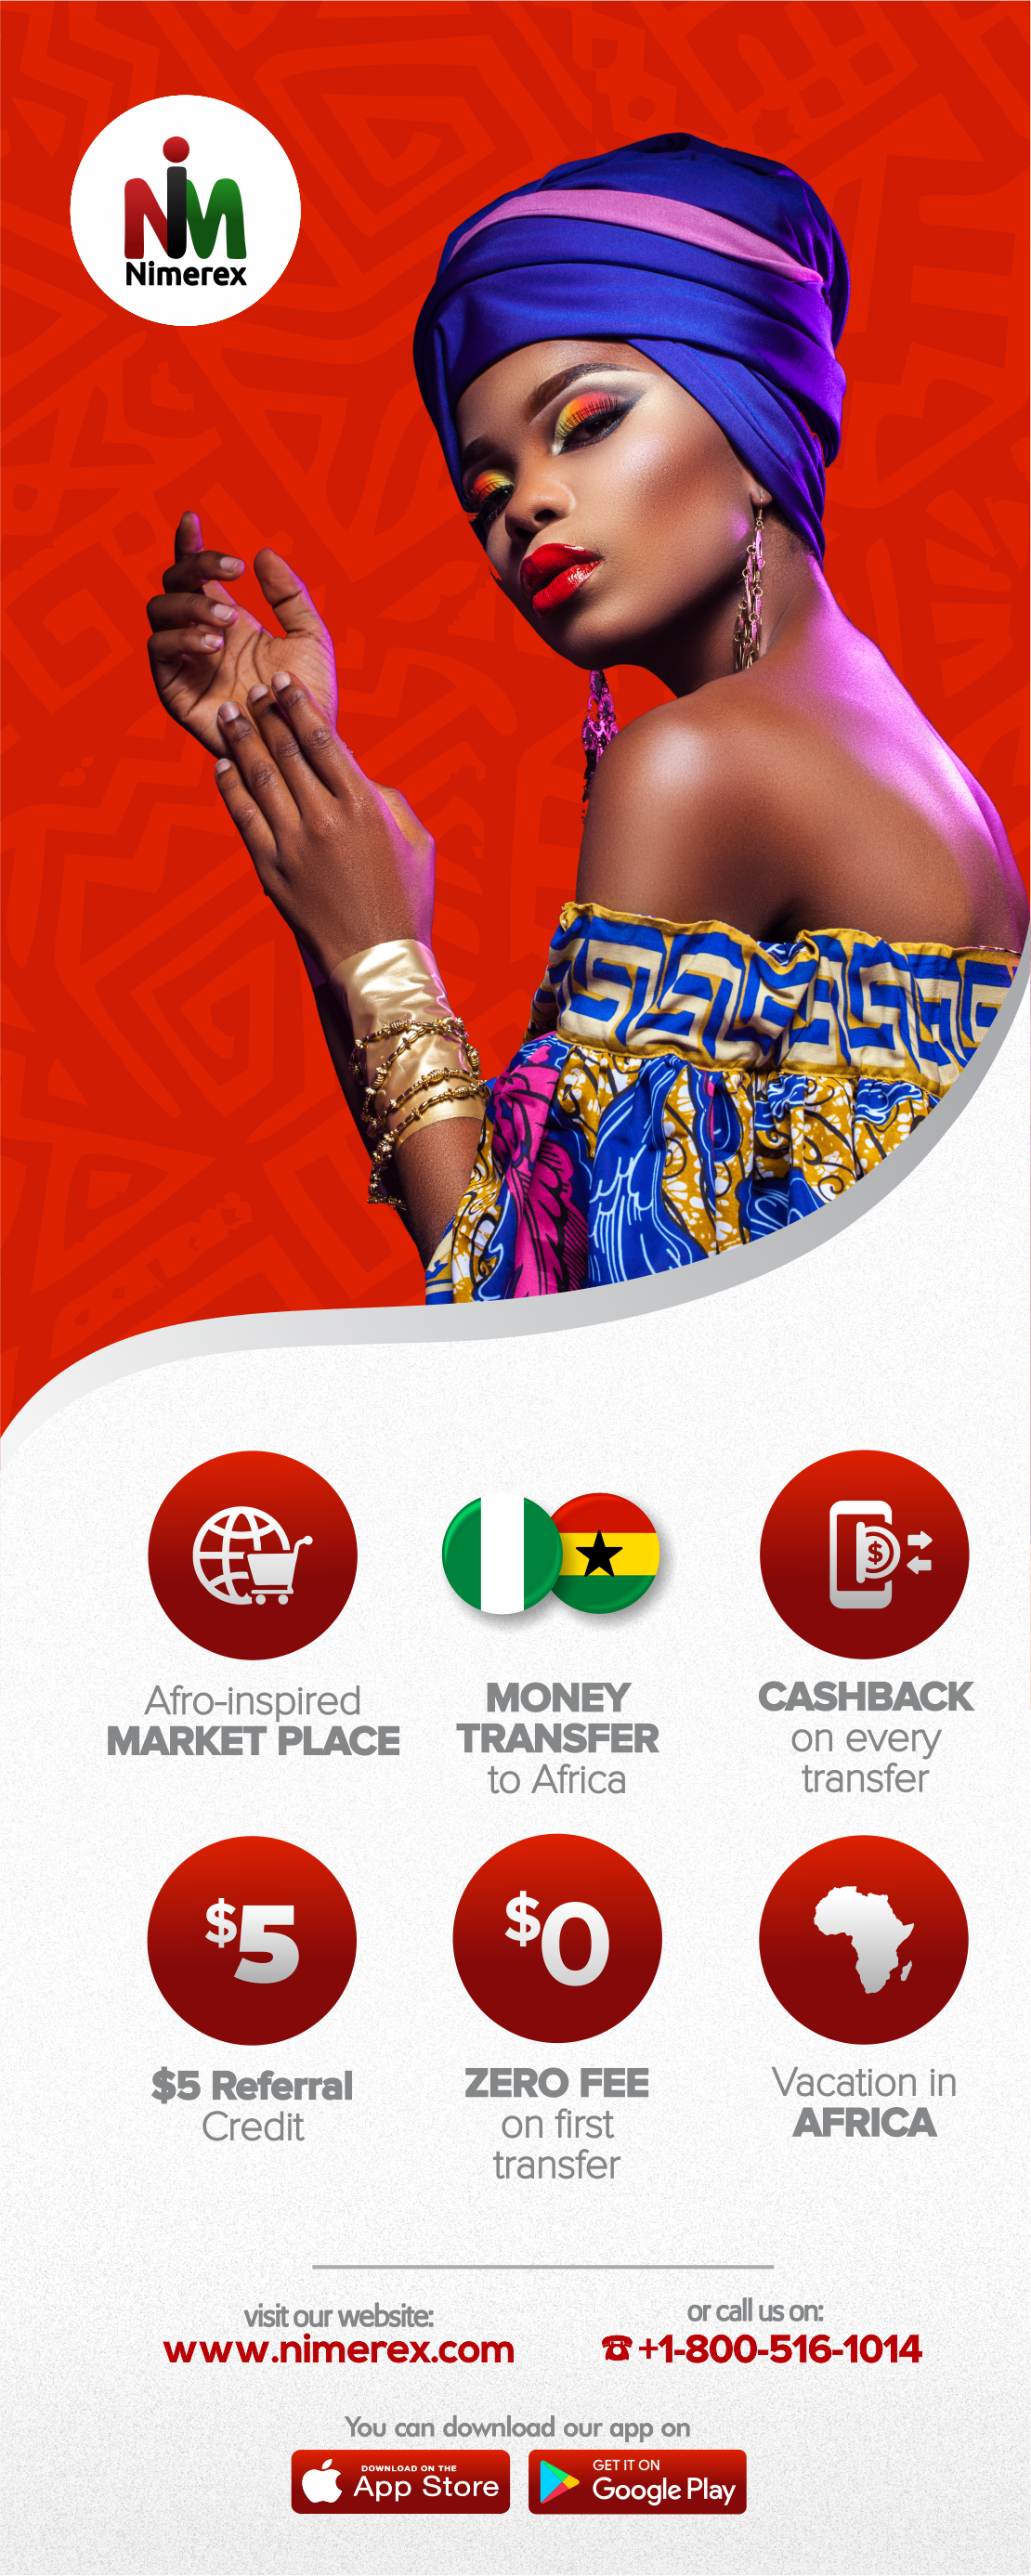 Nimerex Announces the Launch of its Afro-Inspired Online Marketplace